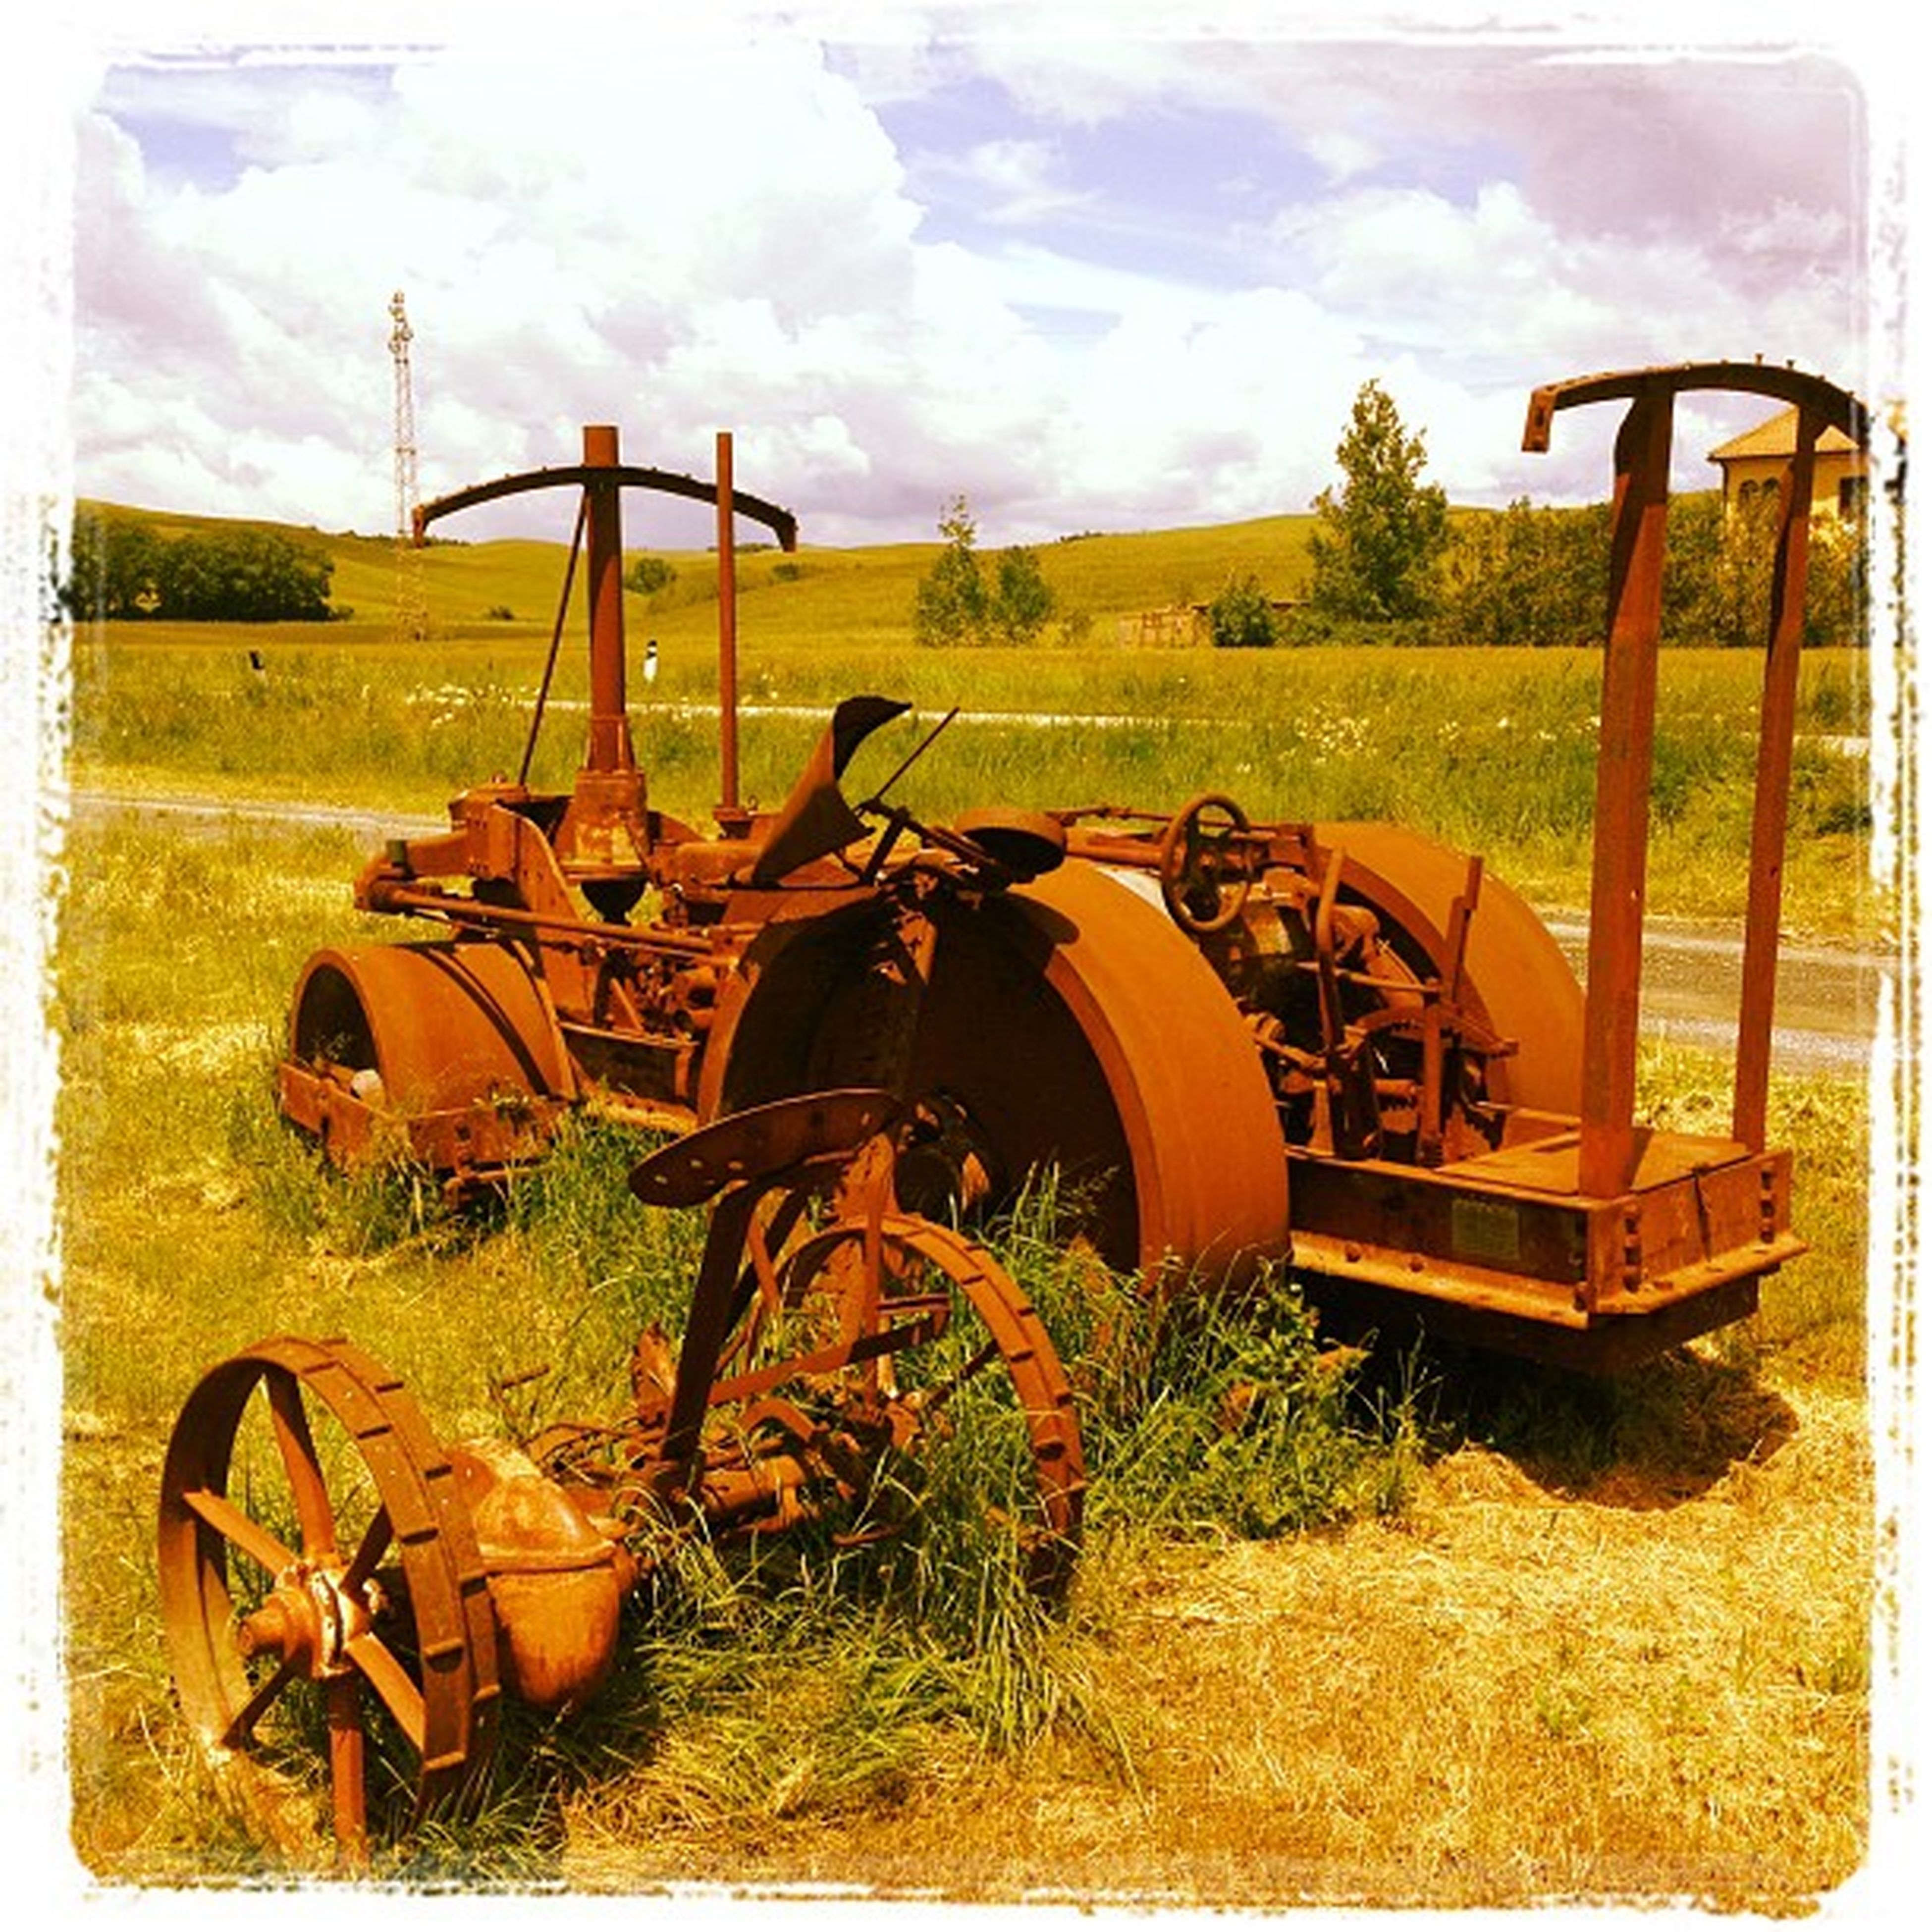 transfer print, auto post production filter, mode of transport, field, transportation, agriculture, sky, land vehicle, rural scene, tractor, farm, grass, cloud - sky, abandoned, stationary, outdoors, agricultural machinery, landscape, plant, day